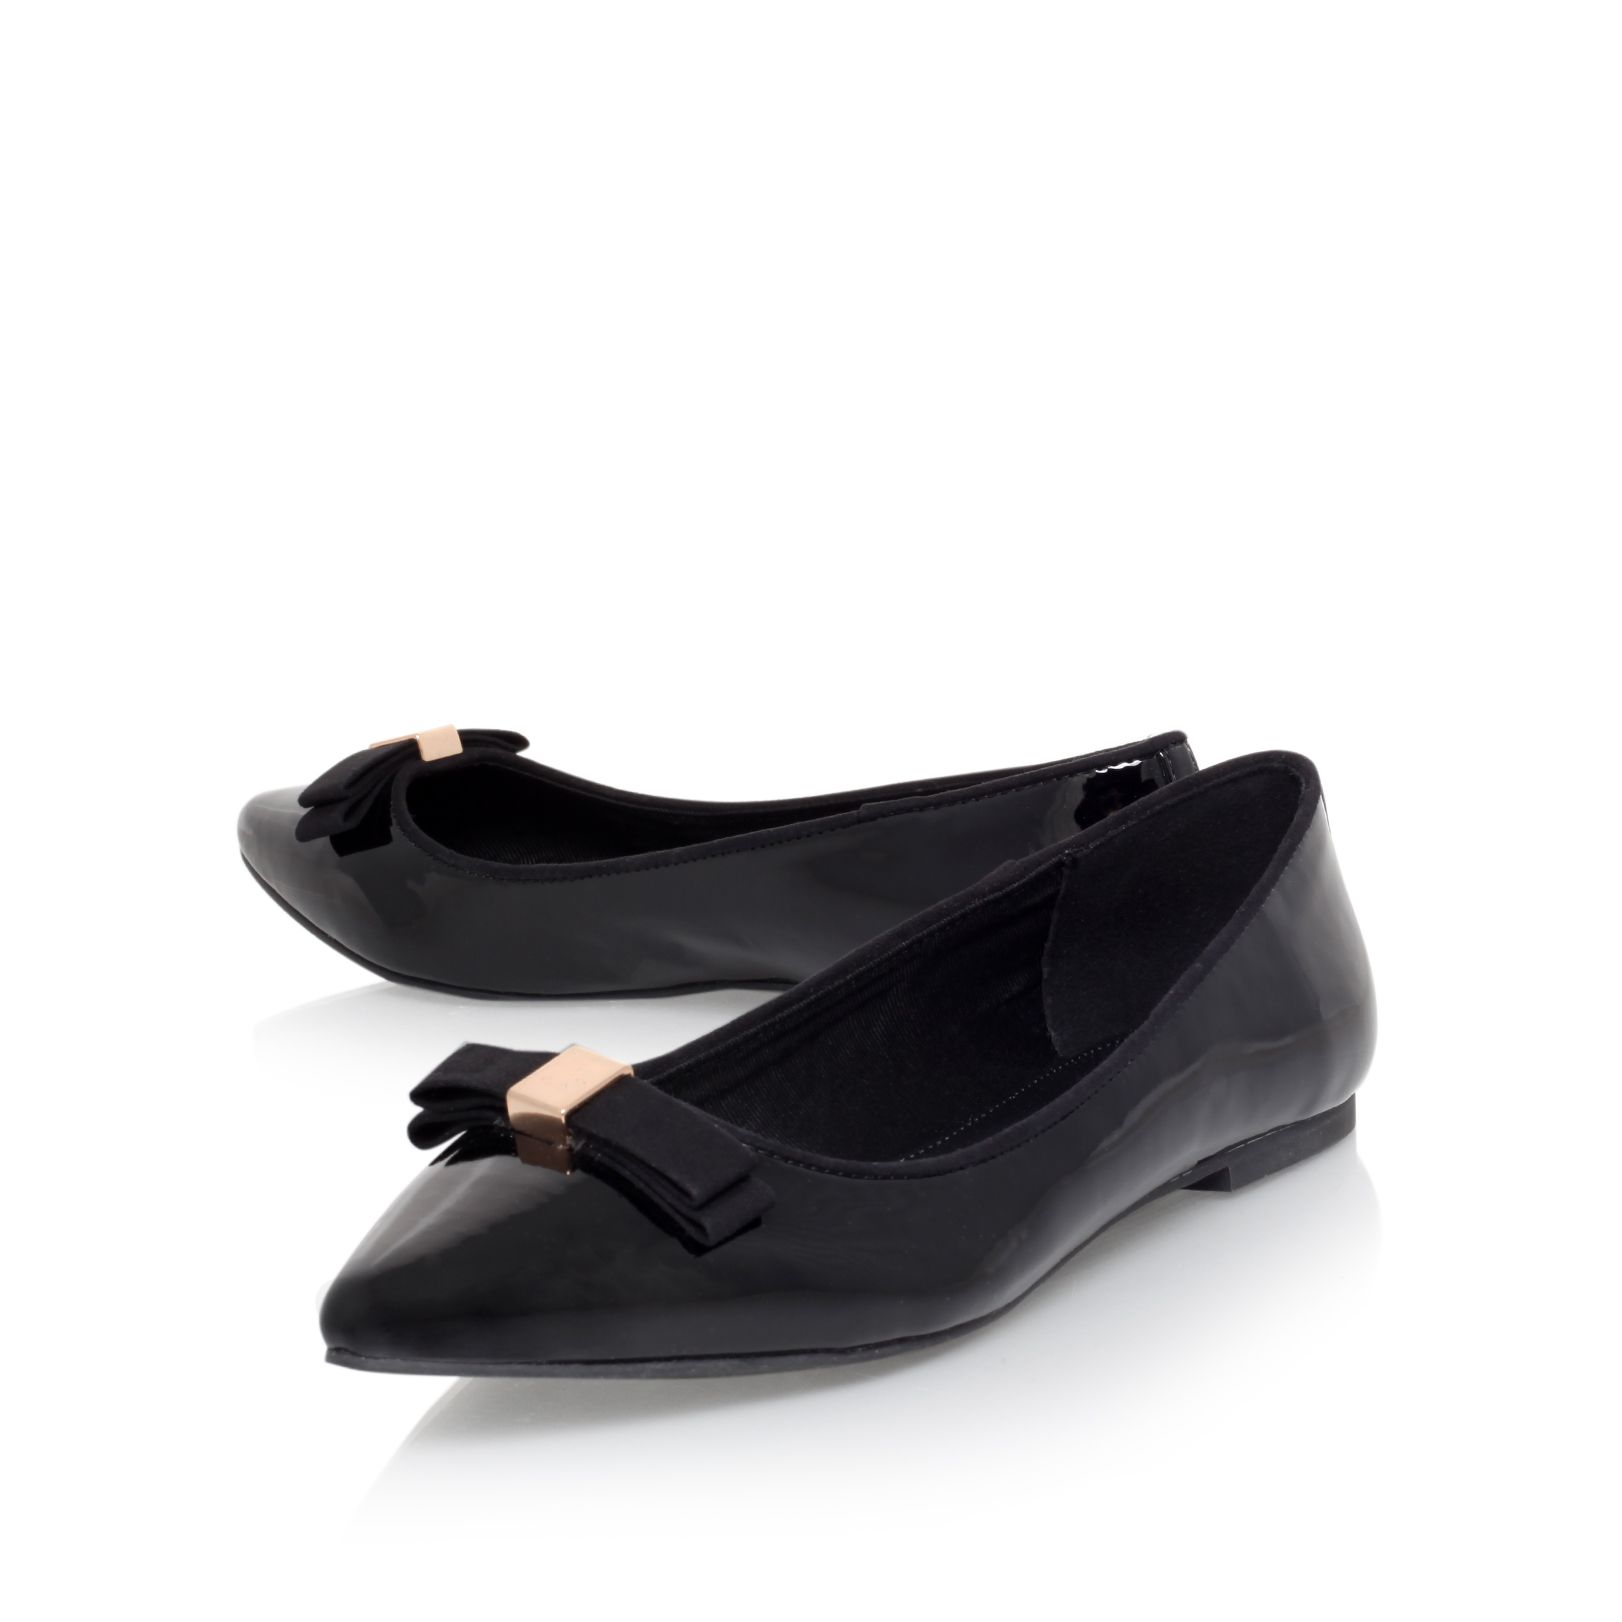 Nanette flat slipper shoes